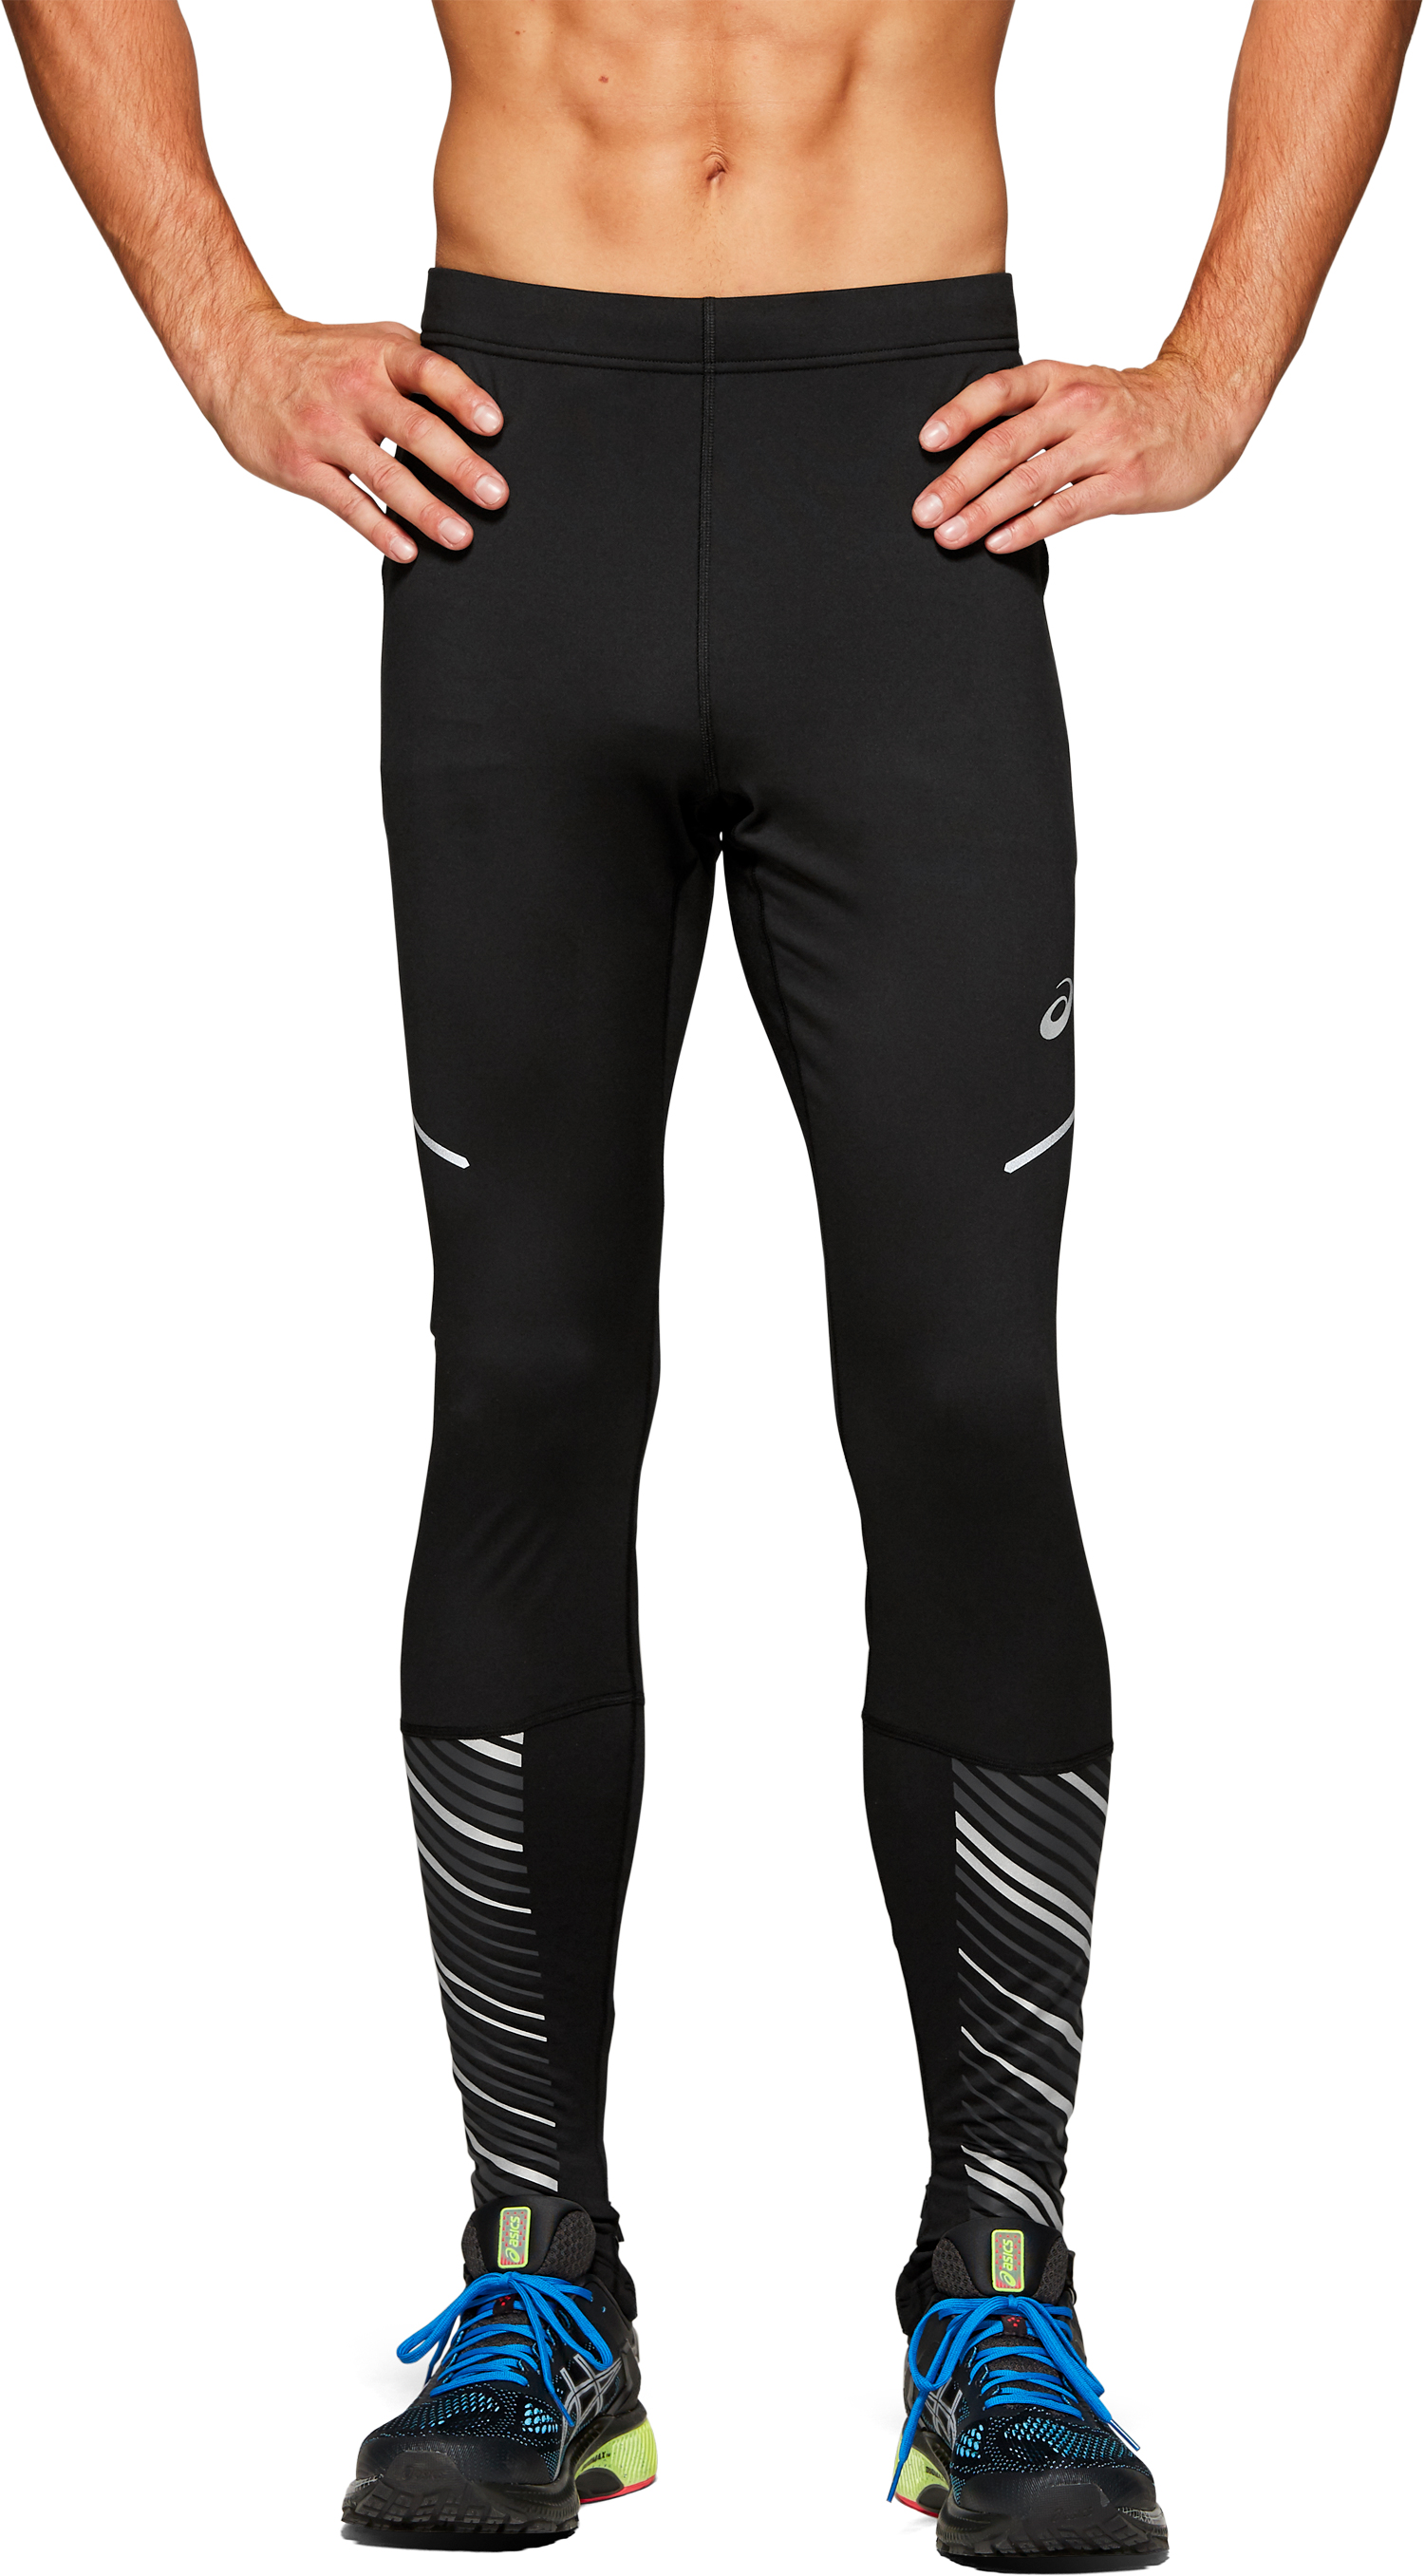 Lite-Show 2 Winter - Running Tights | Trousers